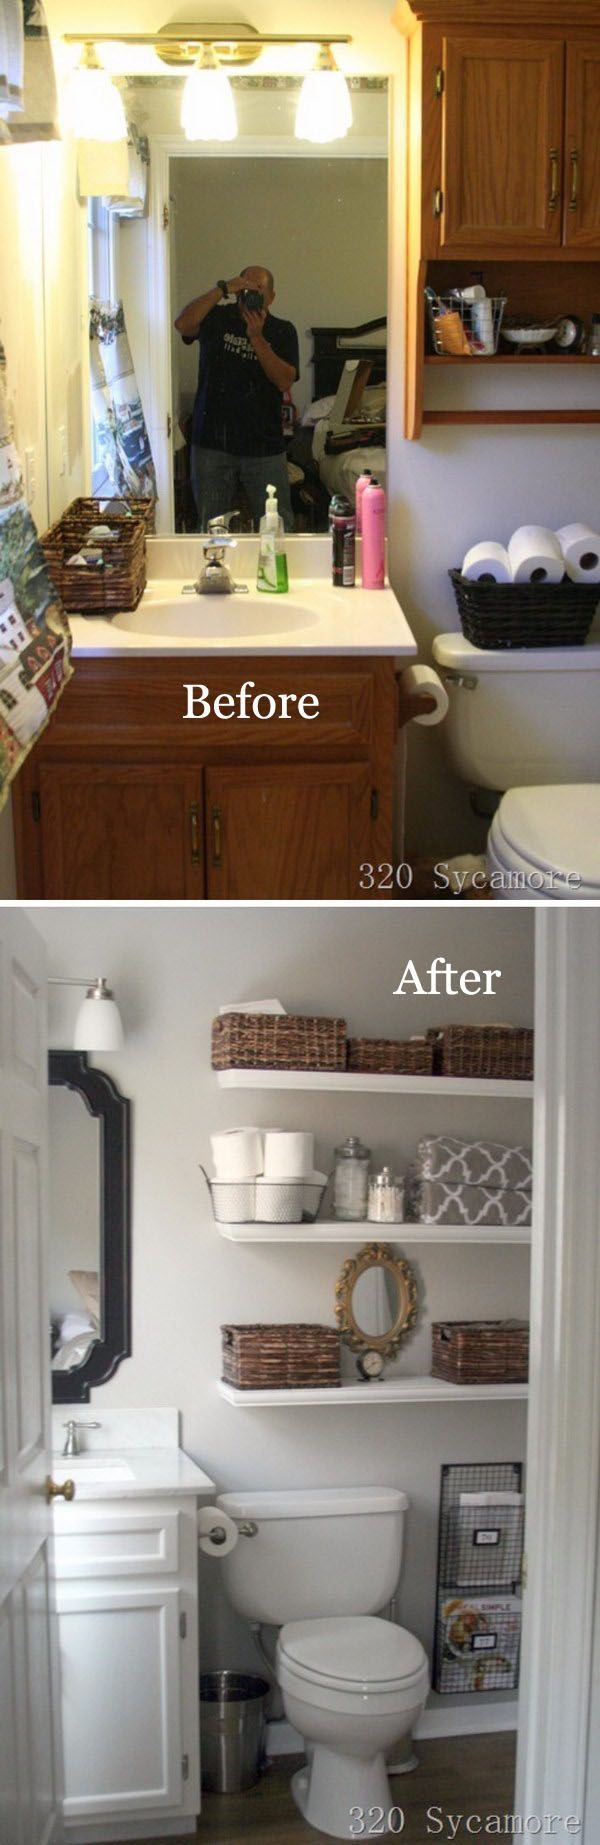 Before And After 20 Awesome Bathroom Makeovers Downstairs Bathroomwhite Bathroommaster Bathroomsbathroom Smallbrown Bathroom Decordecorating